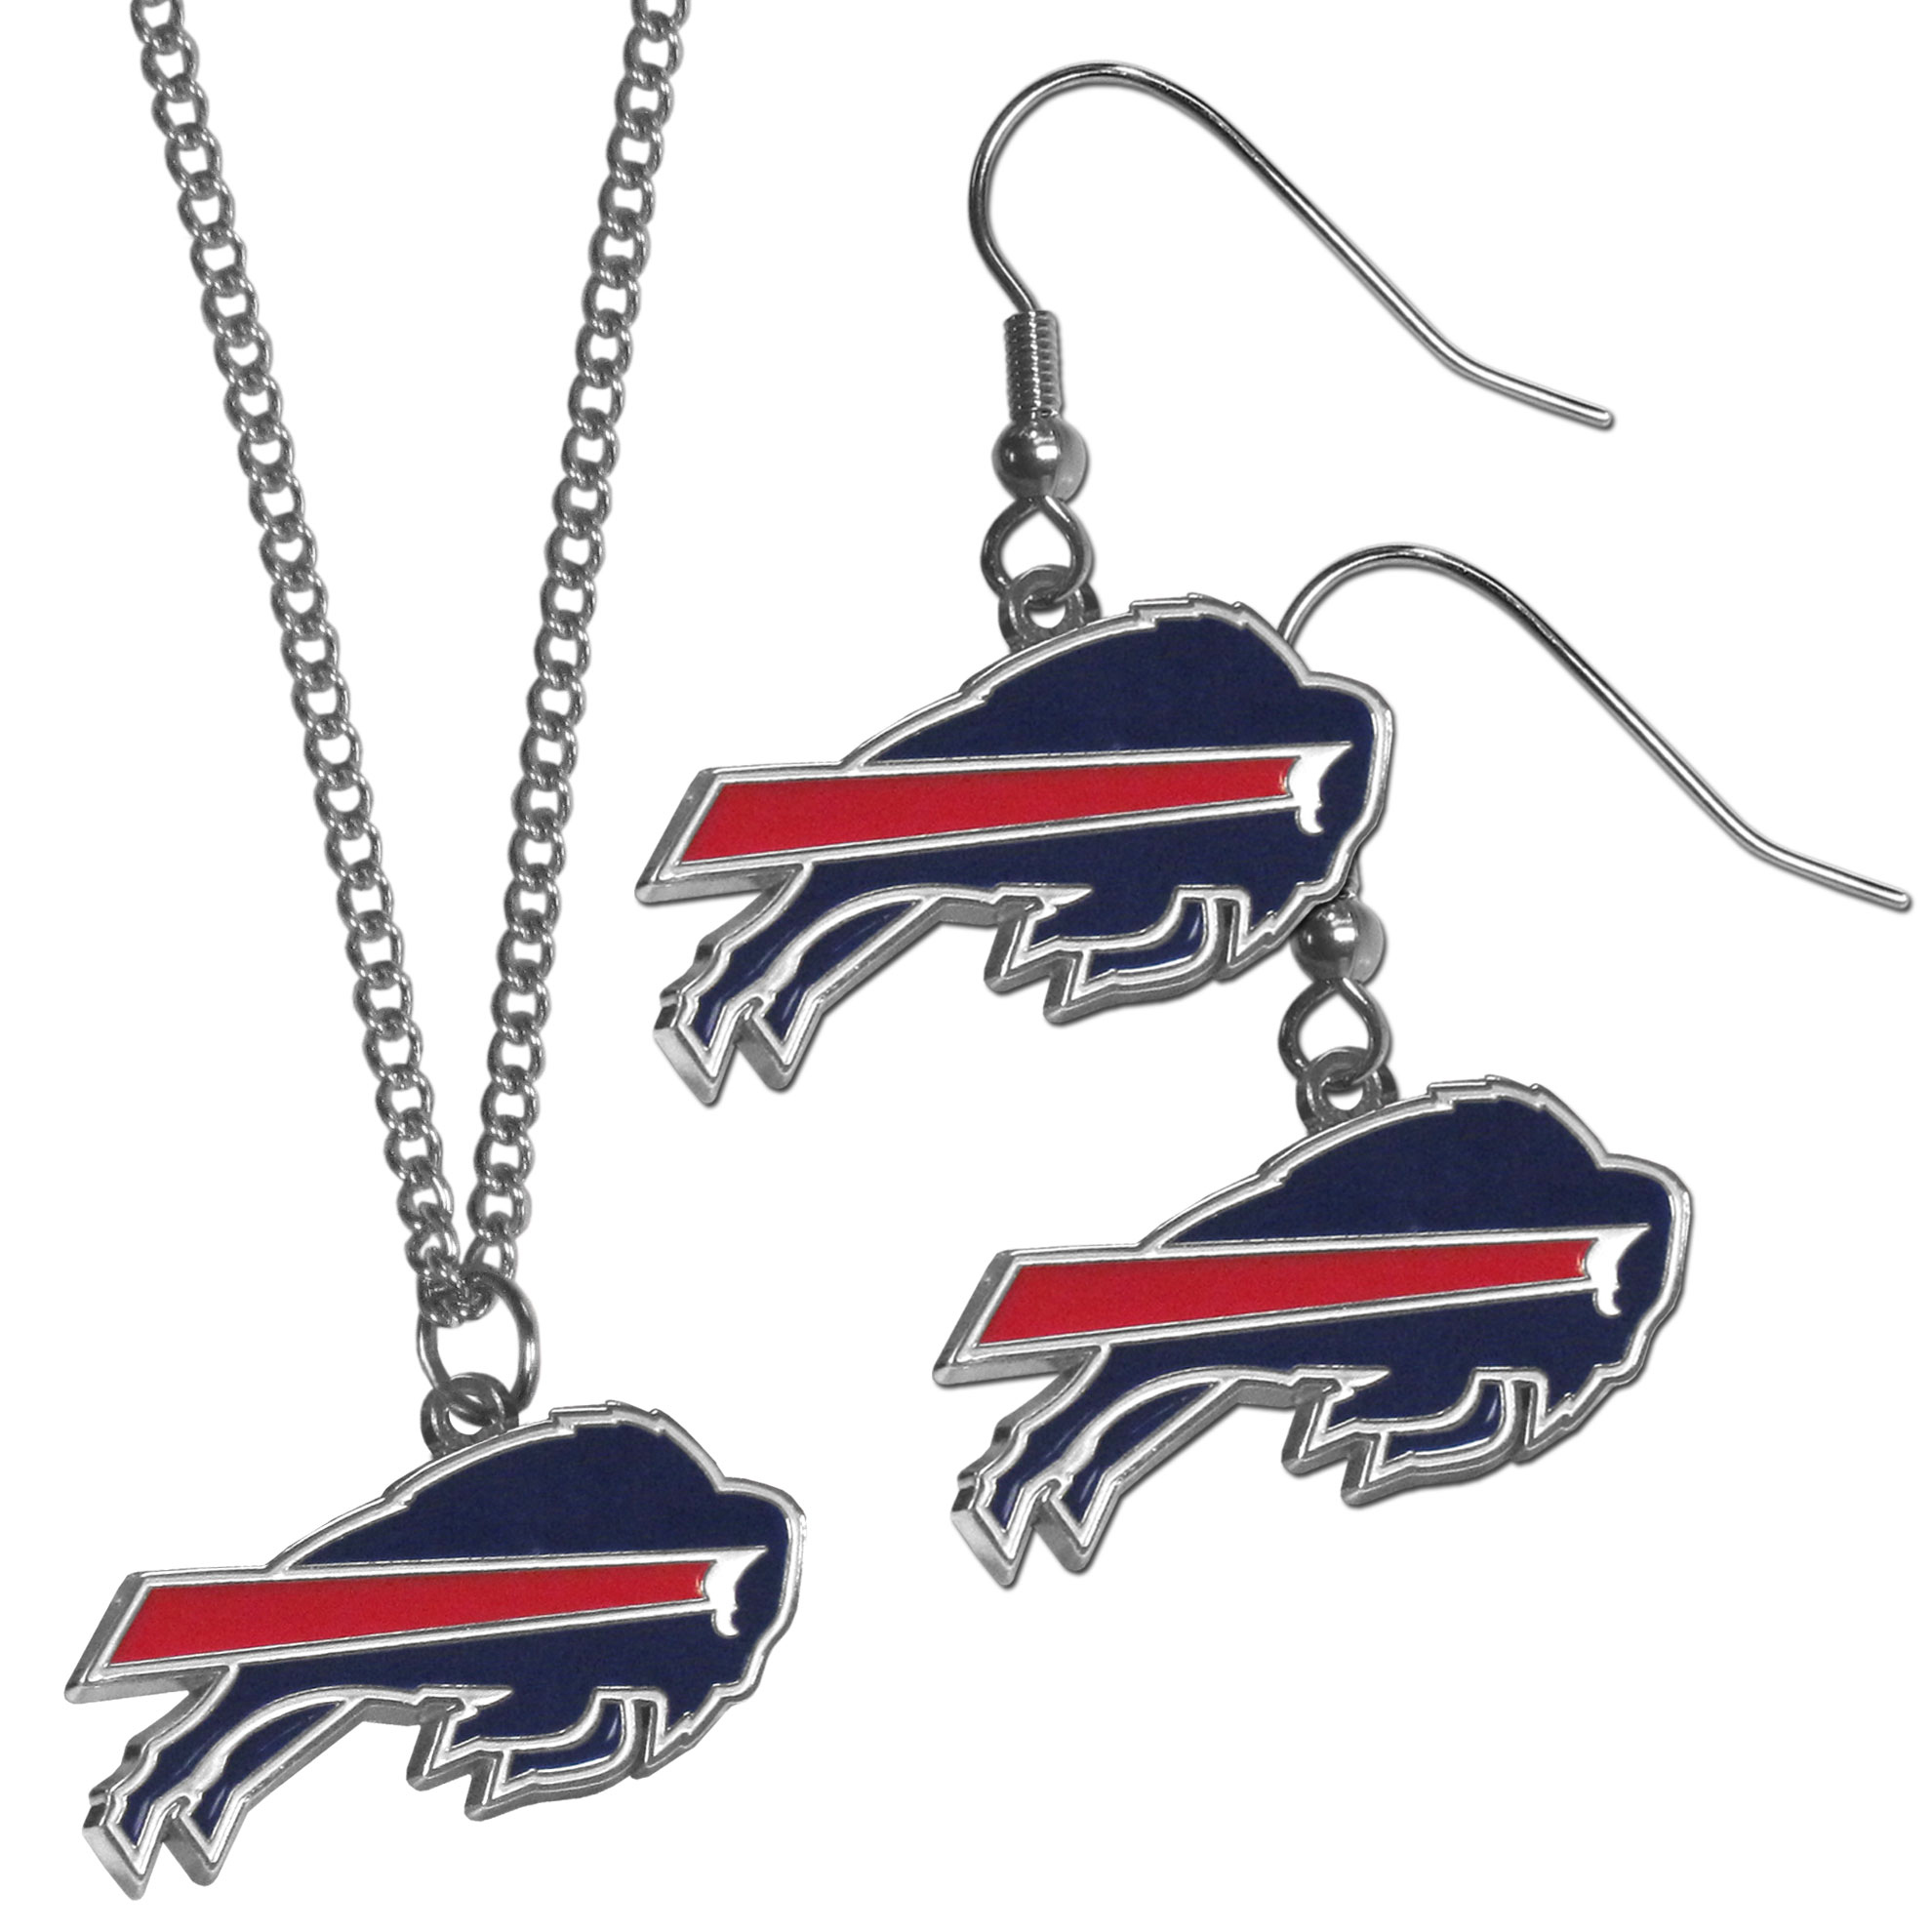 Buffalo Bills Dangle Earrings and Chain Necklace Set - This classic jewelry set contains are most popular Buffalo Bills dangle earrings and 22 inch chain necklace. The trendy, dangle earrings are lightweight and feature a fully cast metal team charm with enameled team colors. The matching necklace completes this fashion forward combo and is a spirited set that is perfect for game day but nice enough for everyday.